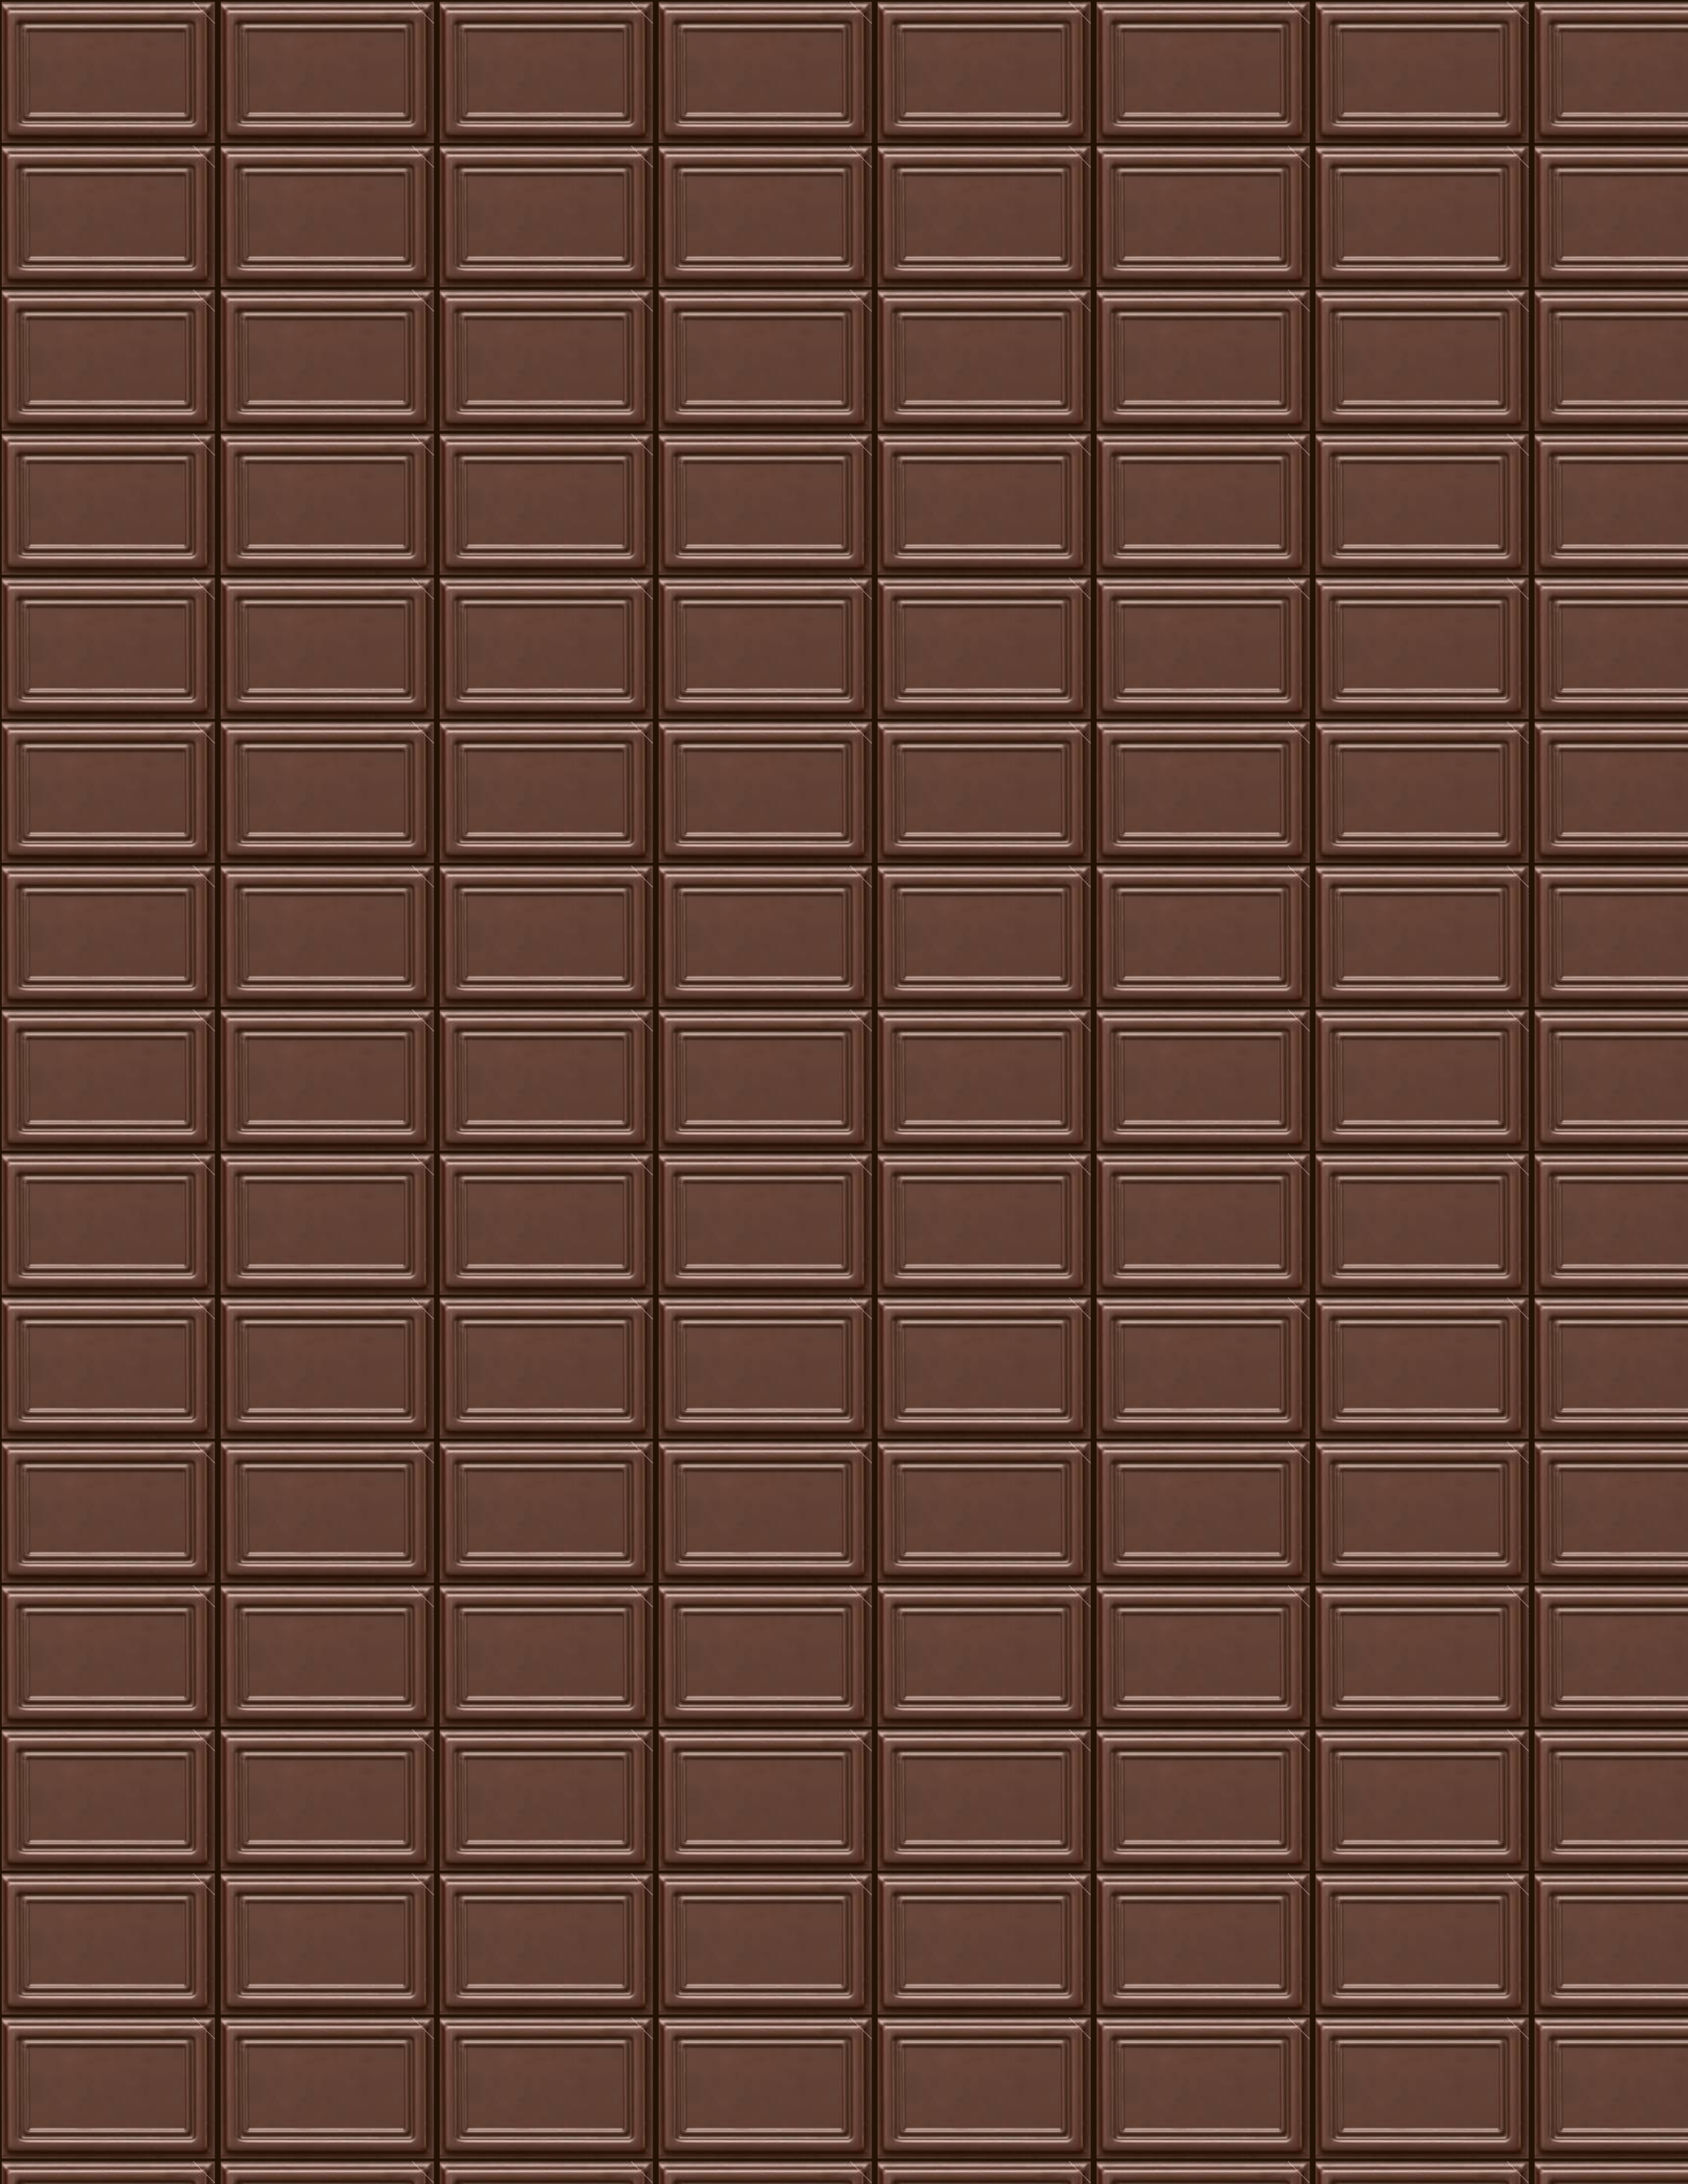 Chocolate Pattern